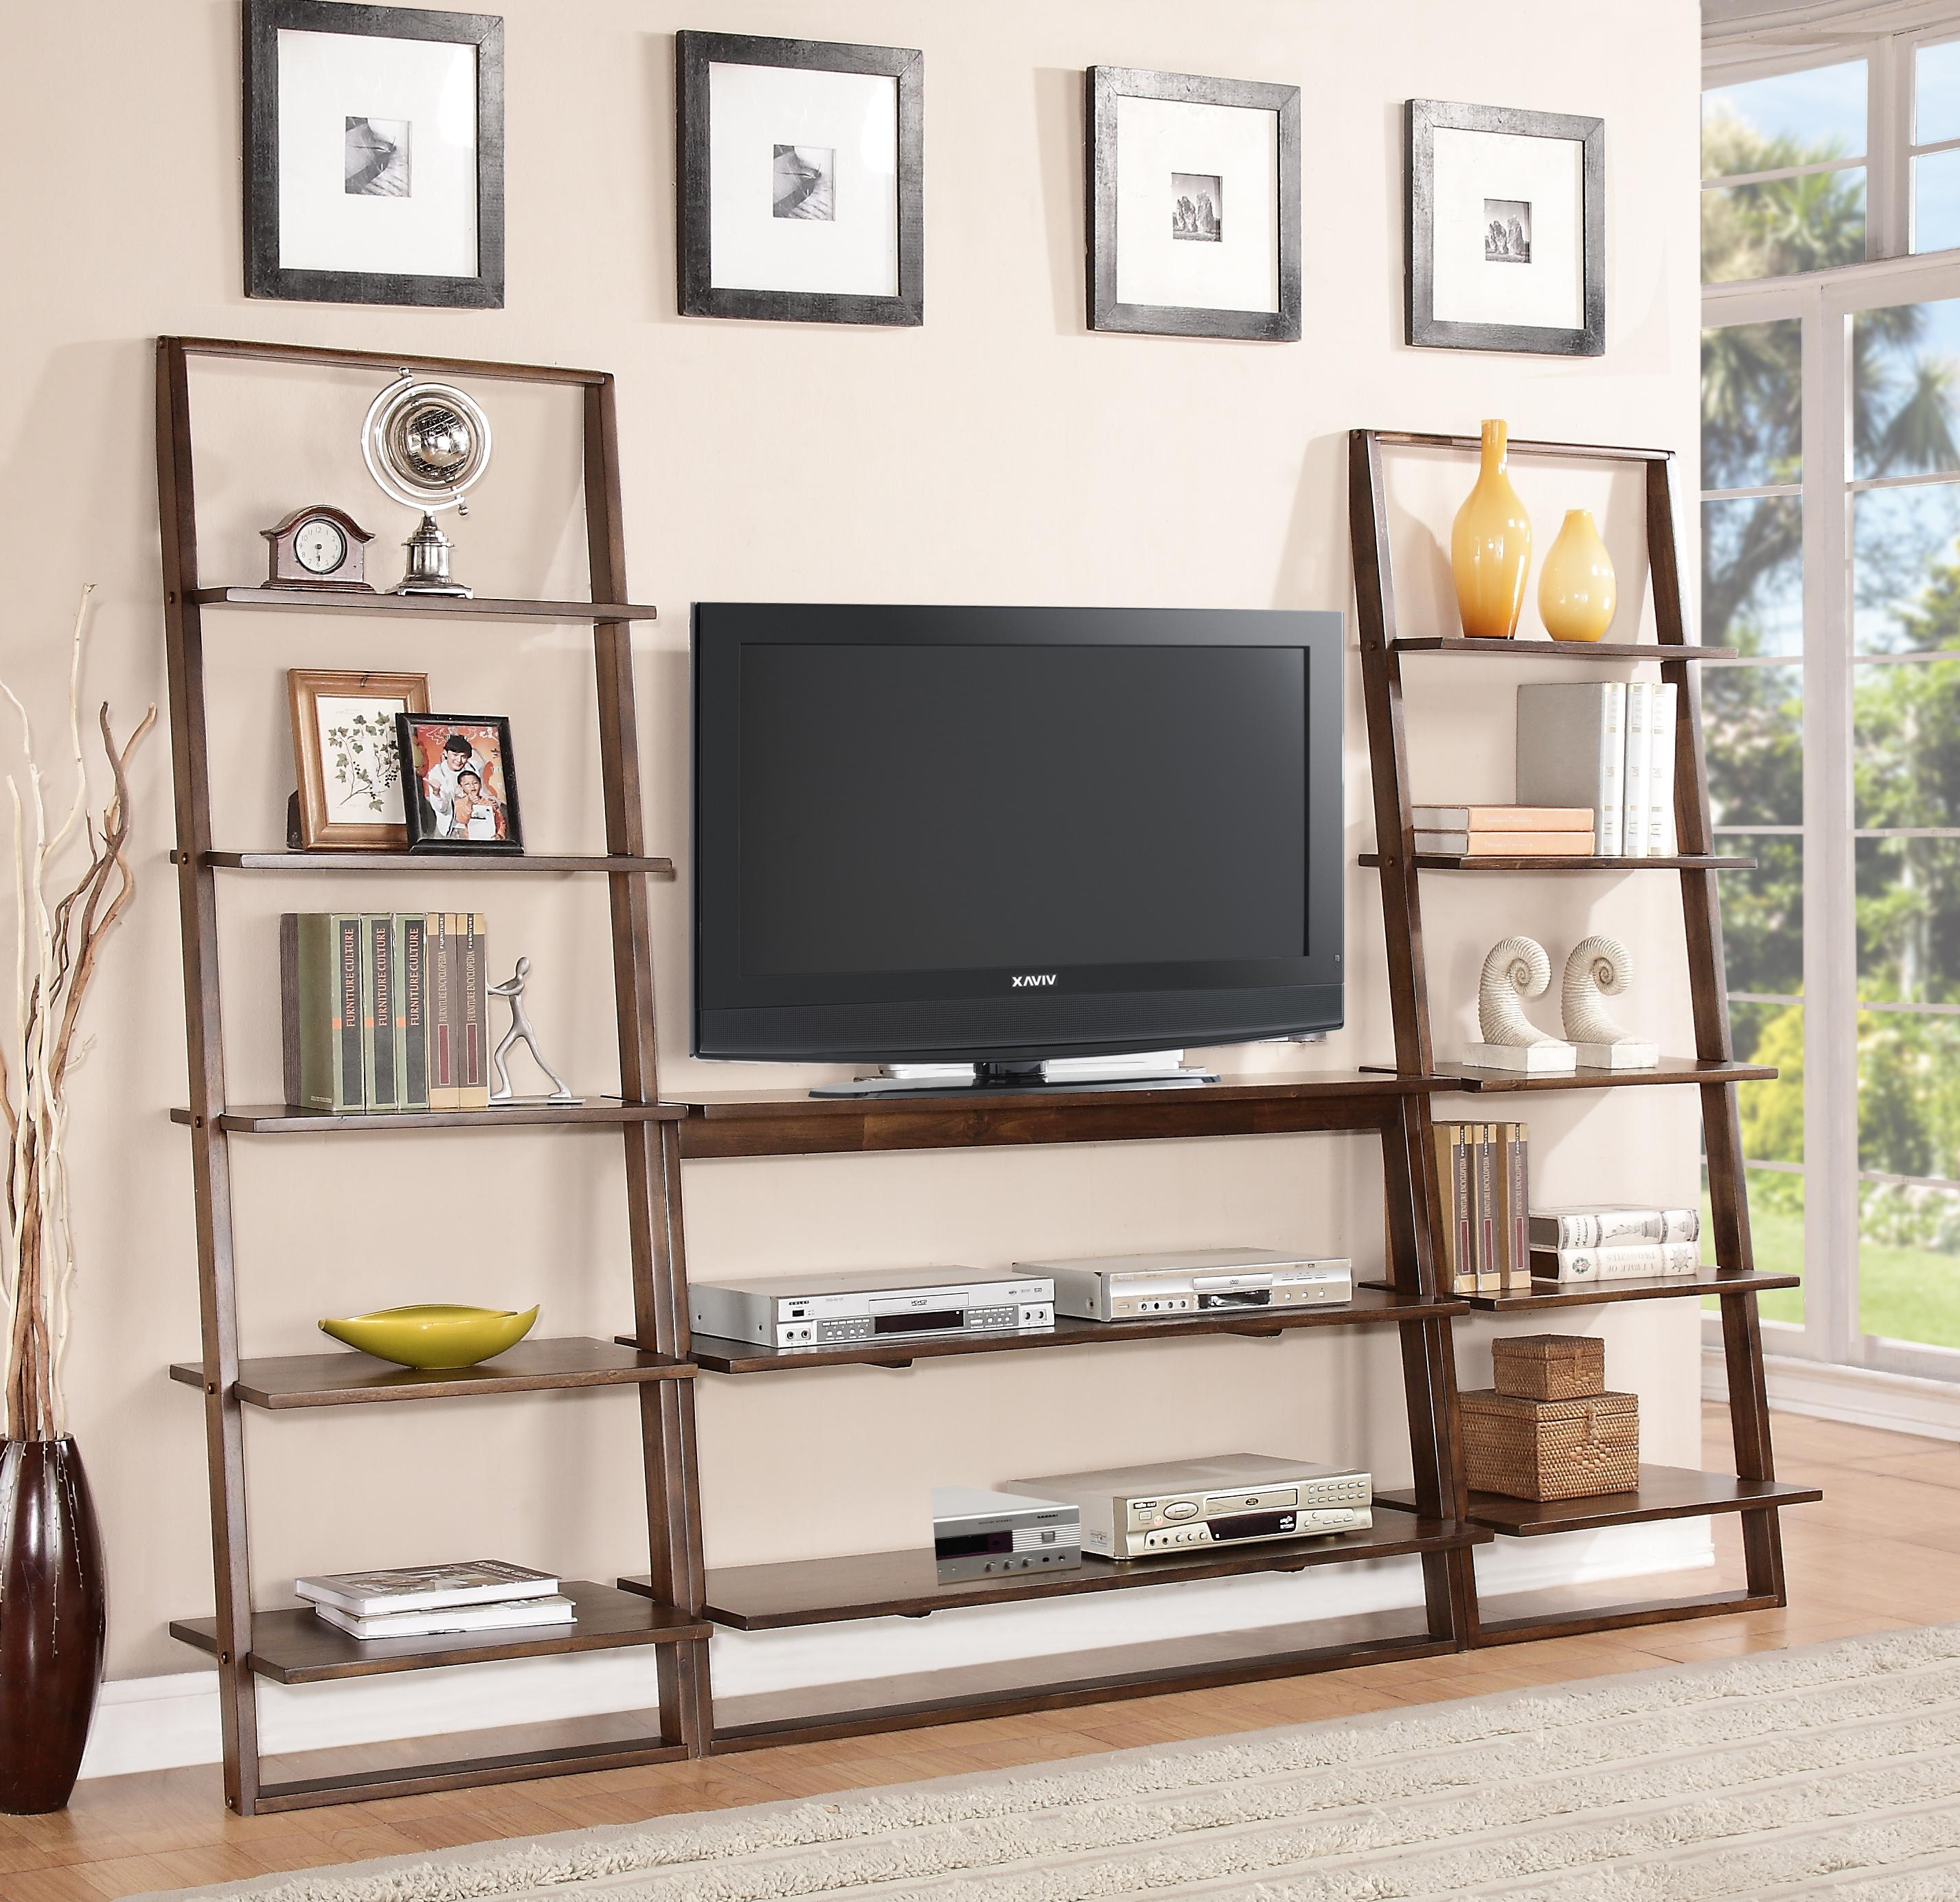 leaning bookcase with 5 shelves by riverside furniture wolf and gardiner wolf furniture. Black Bedroom Furniture Sets. Home Design Ideas